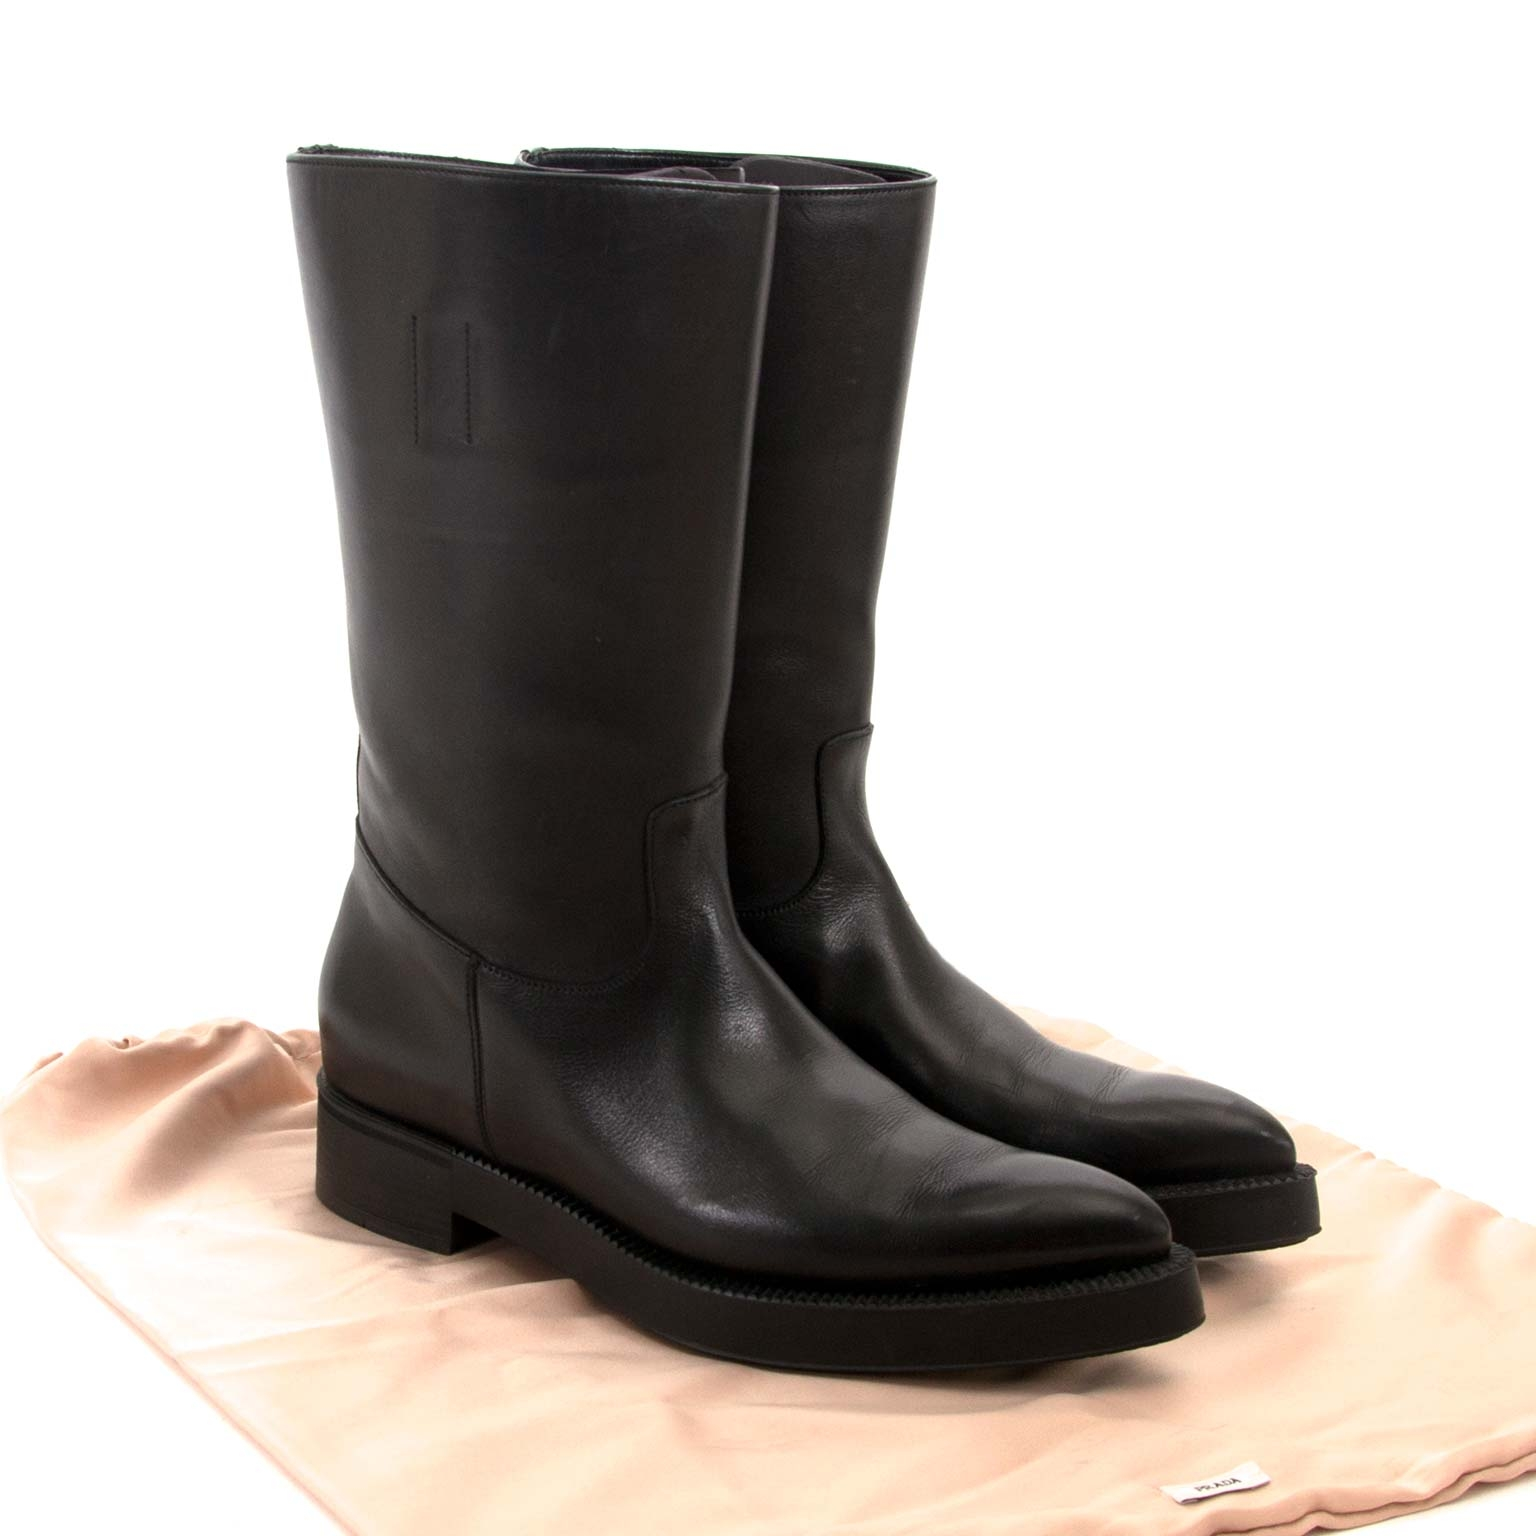 buy prada black calfskin leather boots now for sale at labellov vintage fashion webshop belgium